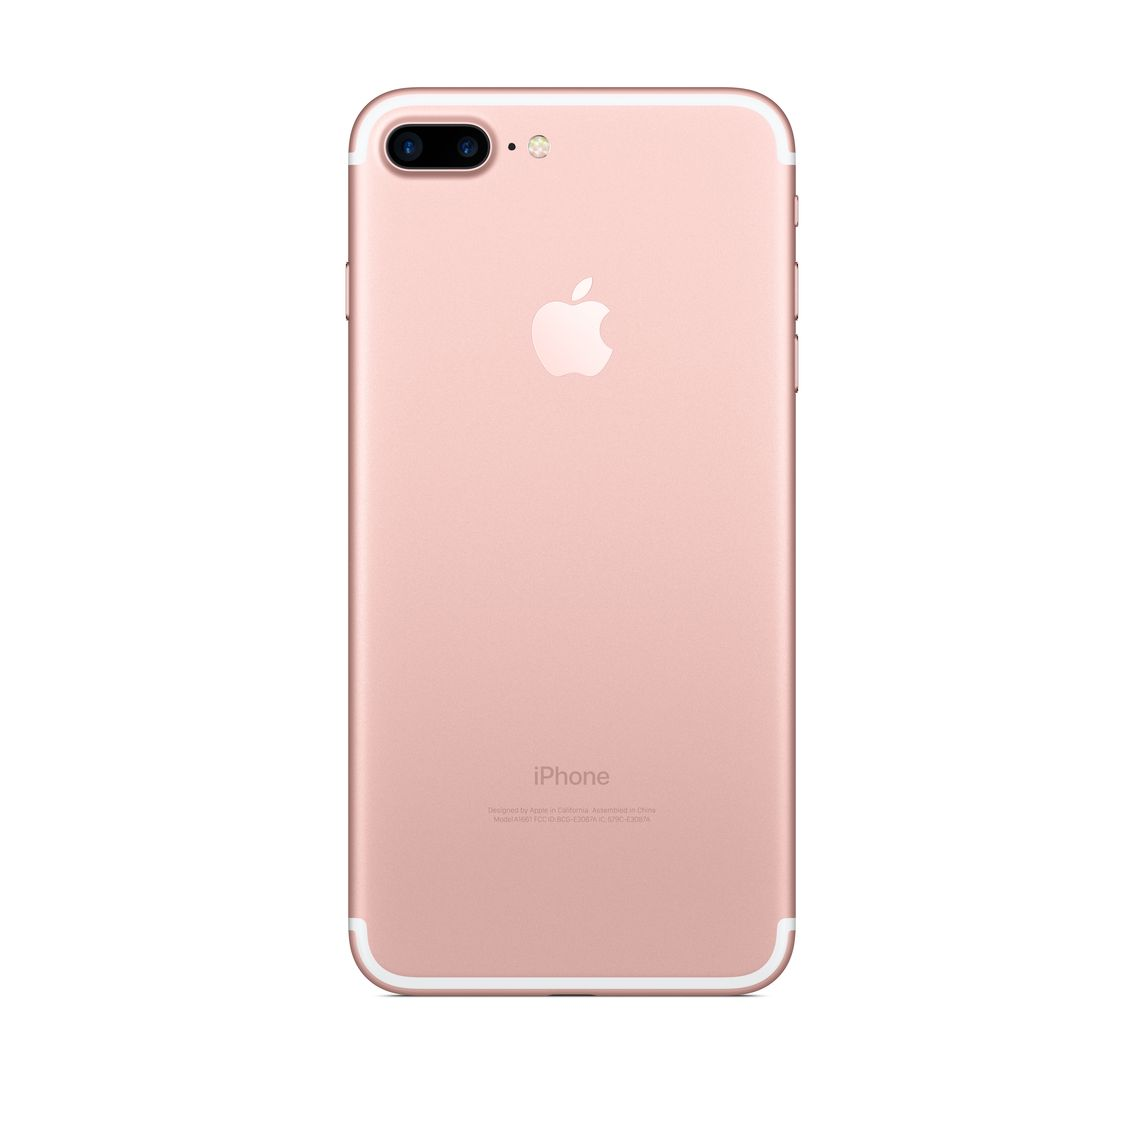 check out 527f9 5baa5 Refurbished iPhone 7 Plus 256GB - Rose Gold (Unlocked)